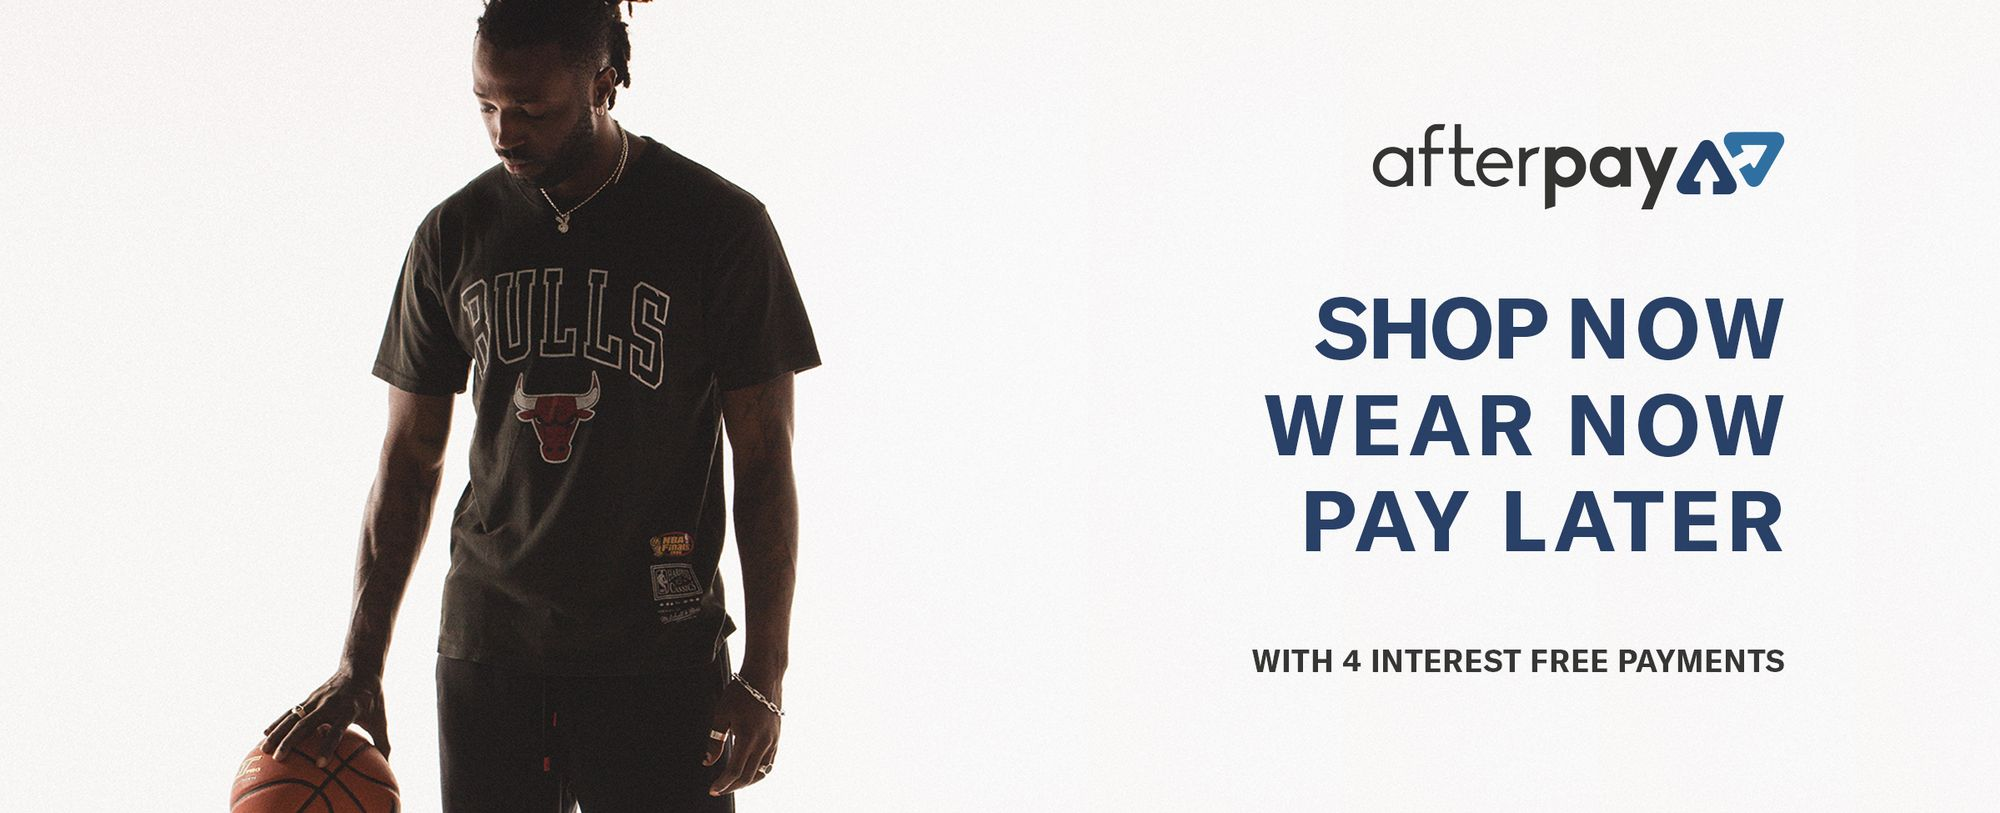 Shop Now, Wear Now, Pay Later.